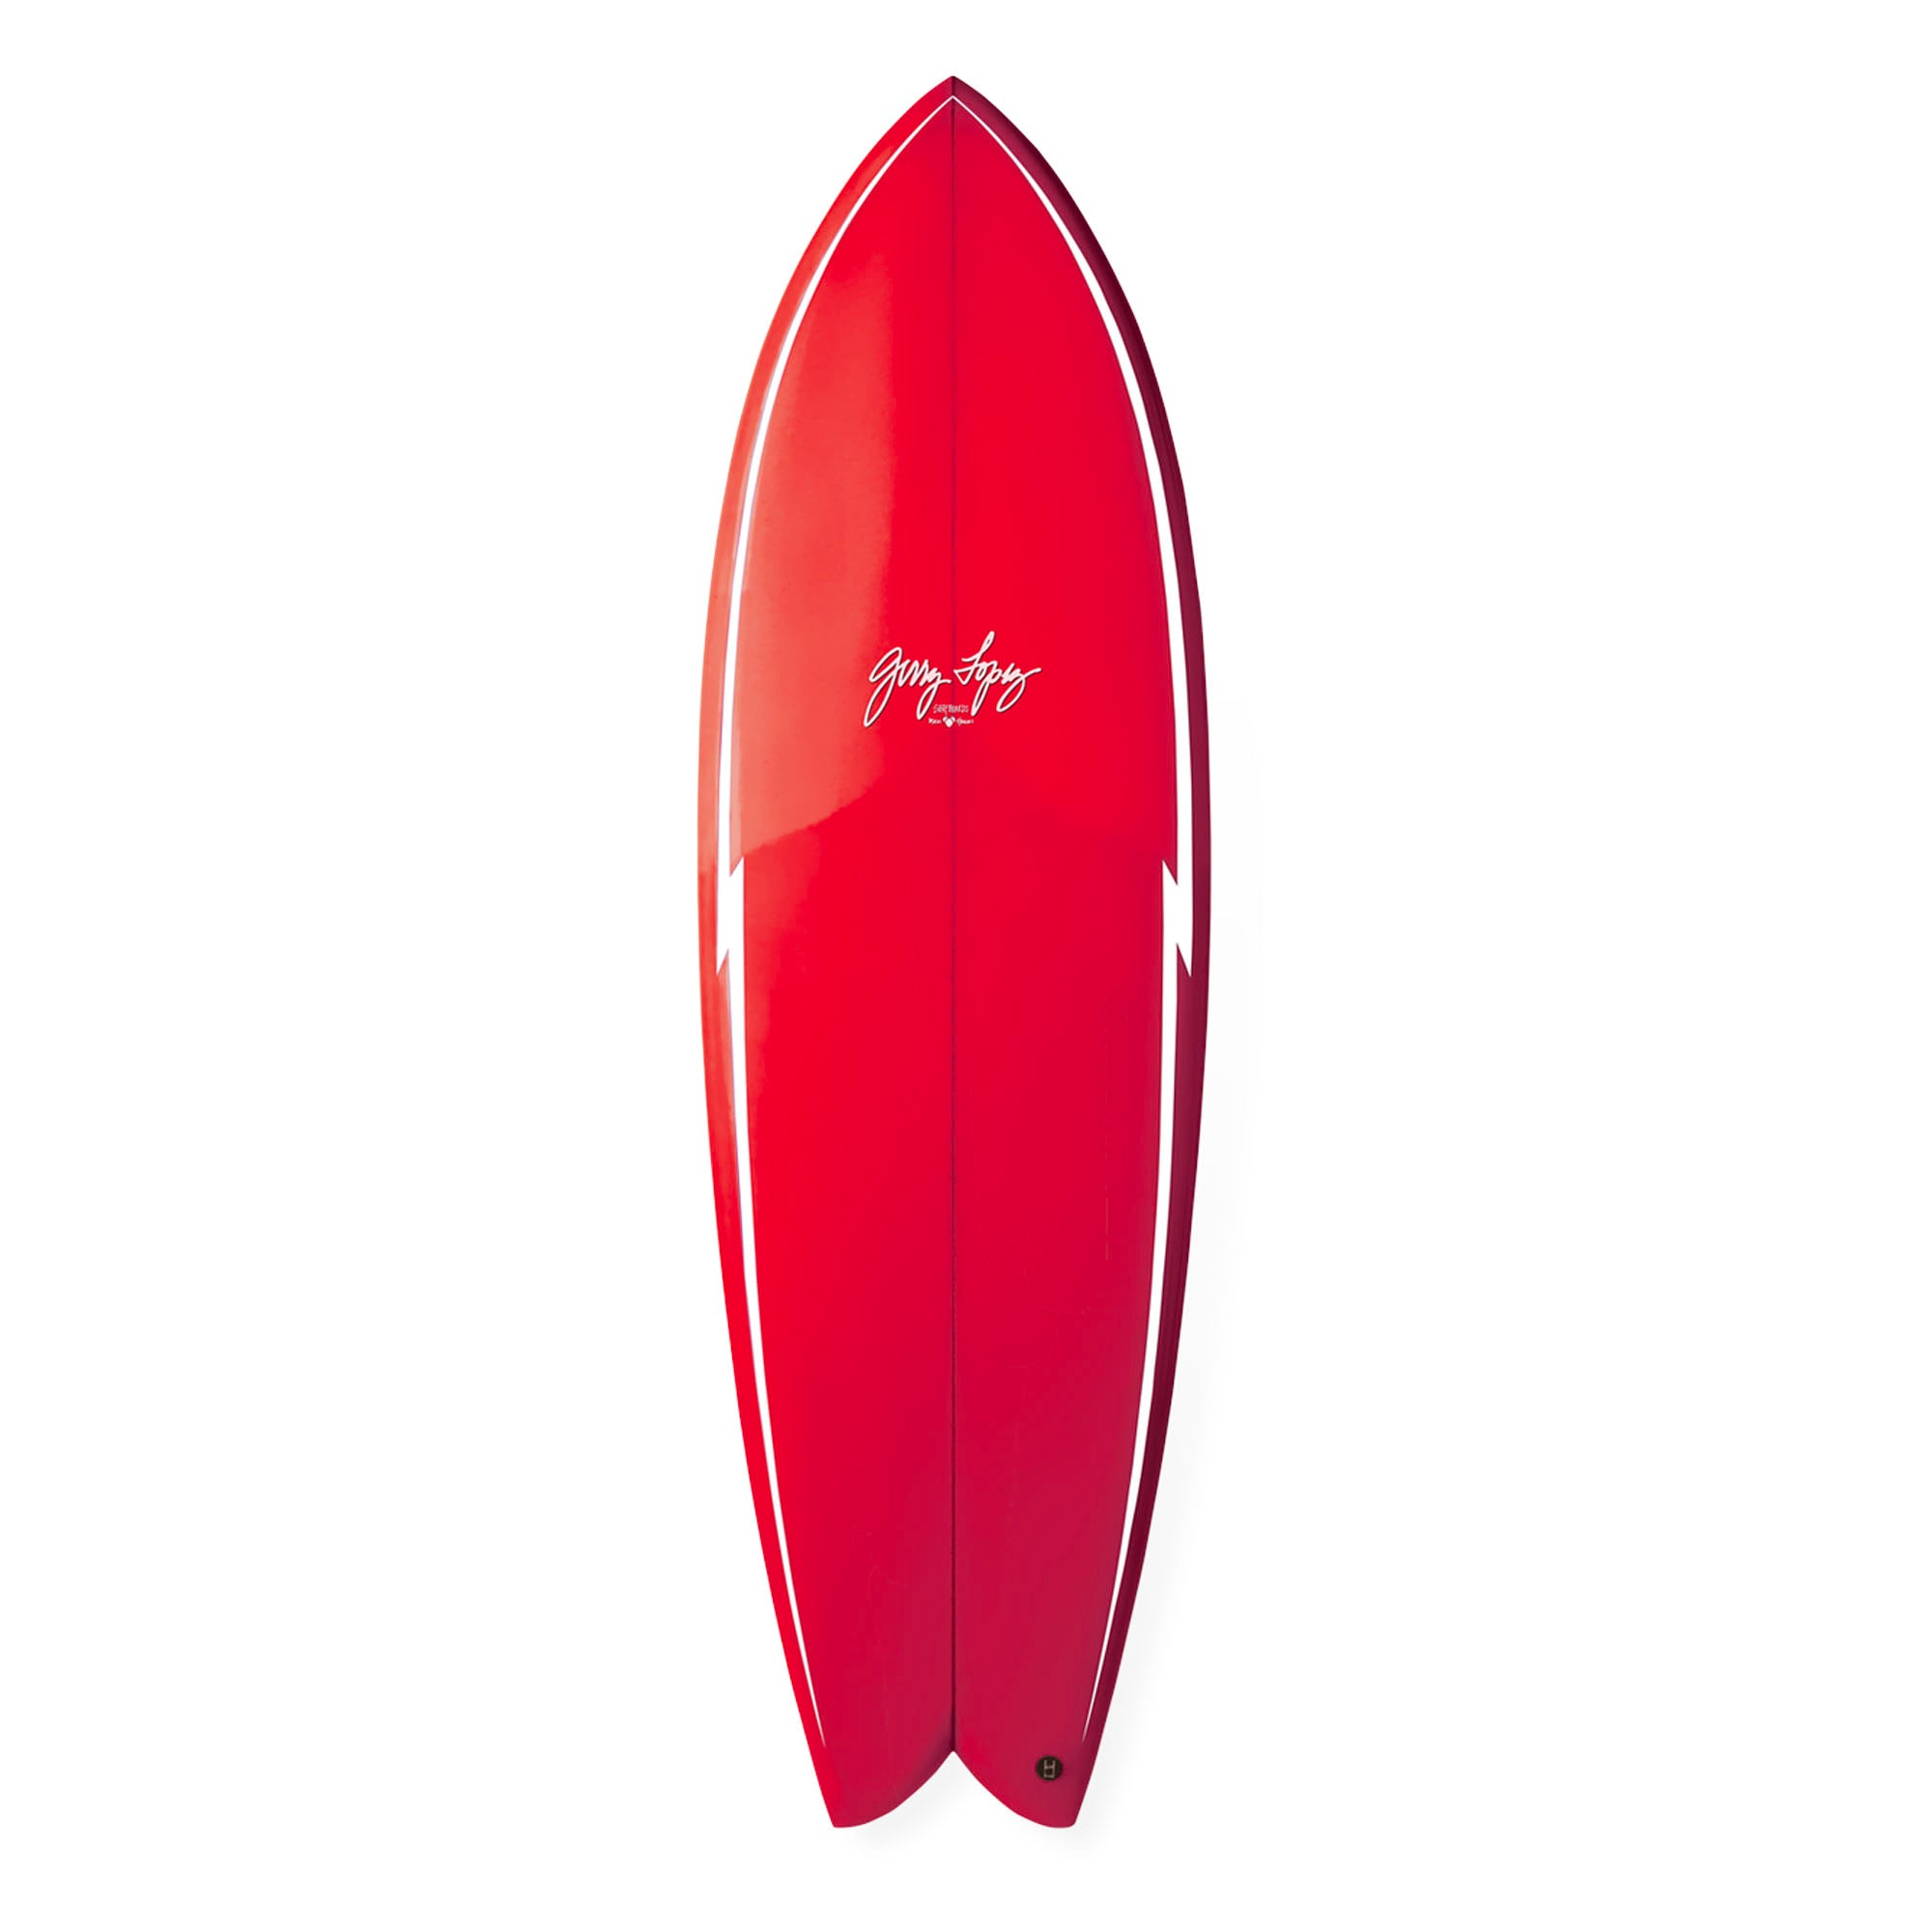 Gerry Lopez Something Fishy Quad Surfboard in gloss red